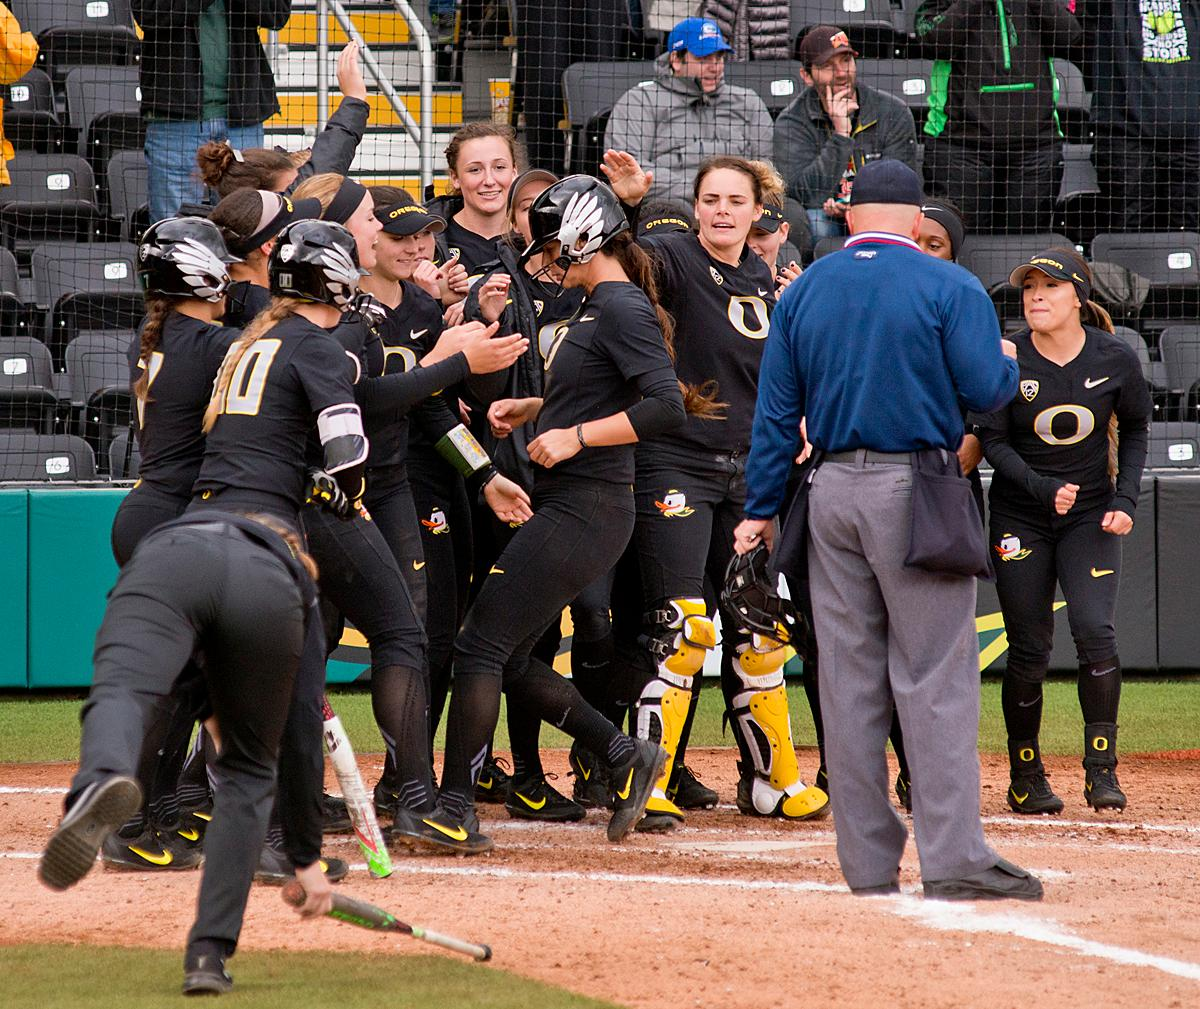 Oregon Ducks Nikki Udria (#3) is congratulated by her teammates after hitting a homerun against the California Golden Bears. The Ducks defeated the Golden Bears 2-1 in game two of a three-game series. Photo by Dan Morrison, Oregon News Lab